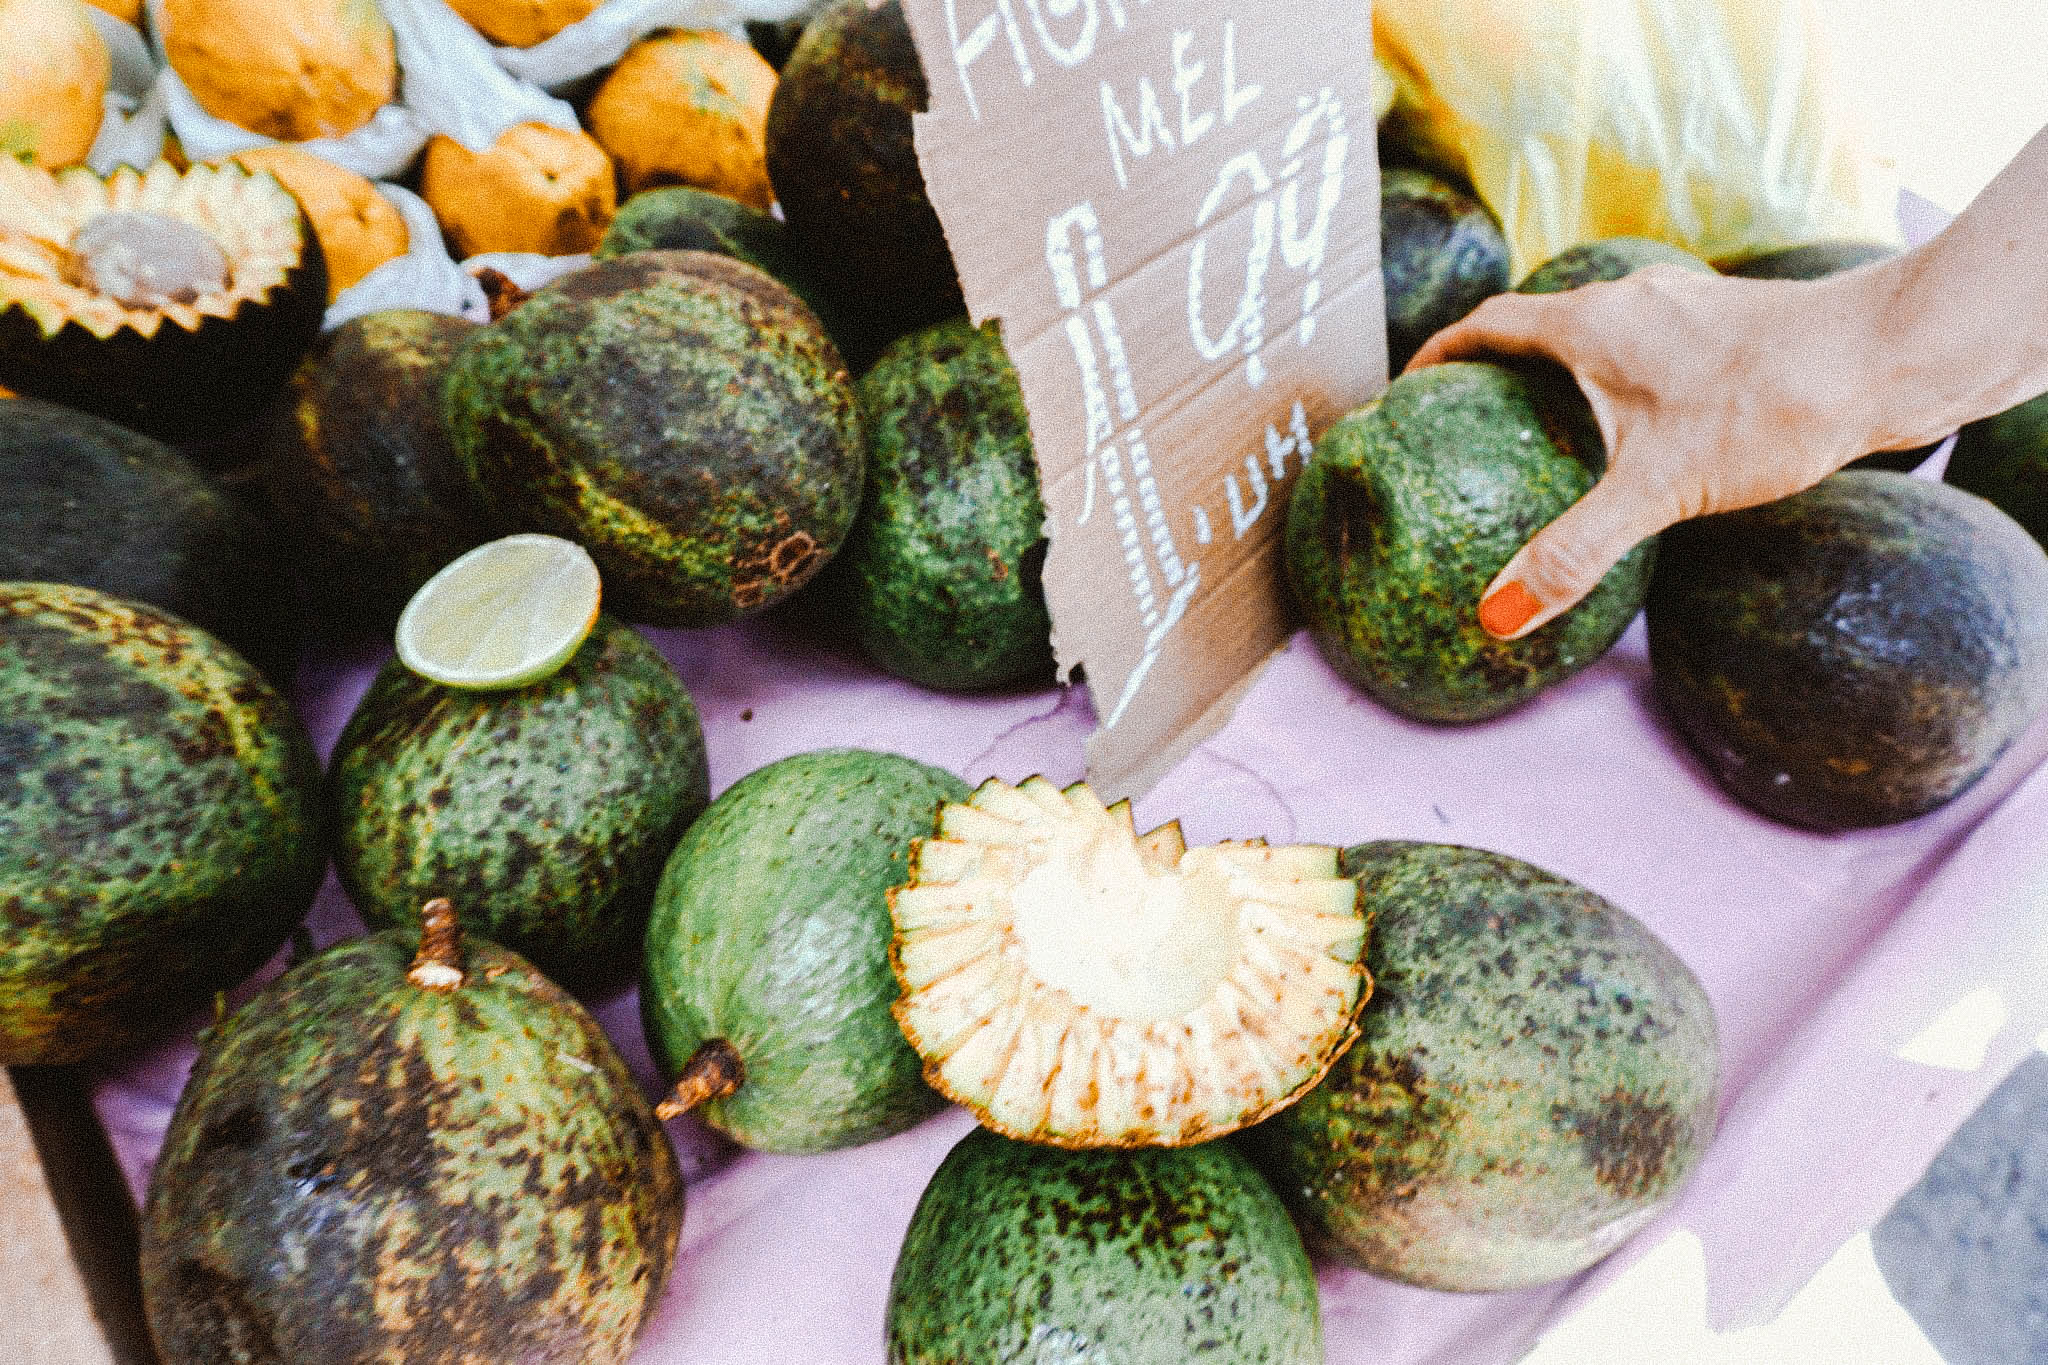 Avocados… some as big as your head!